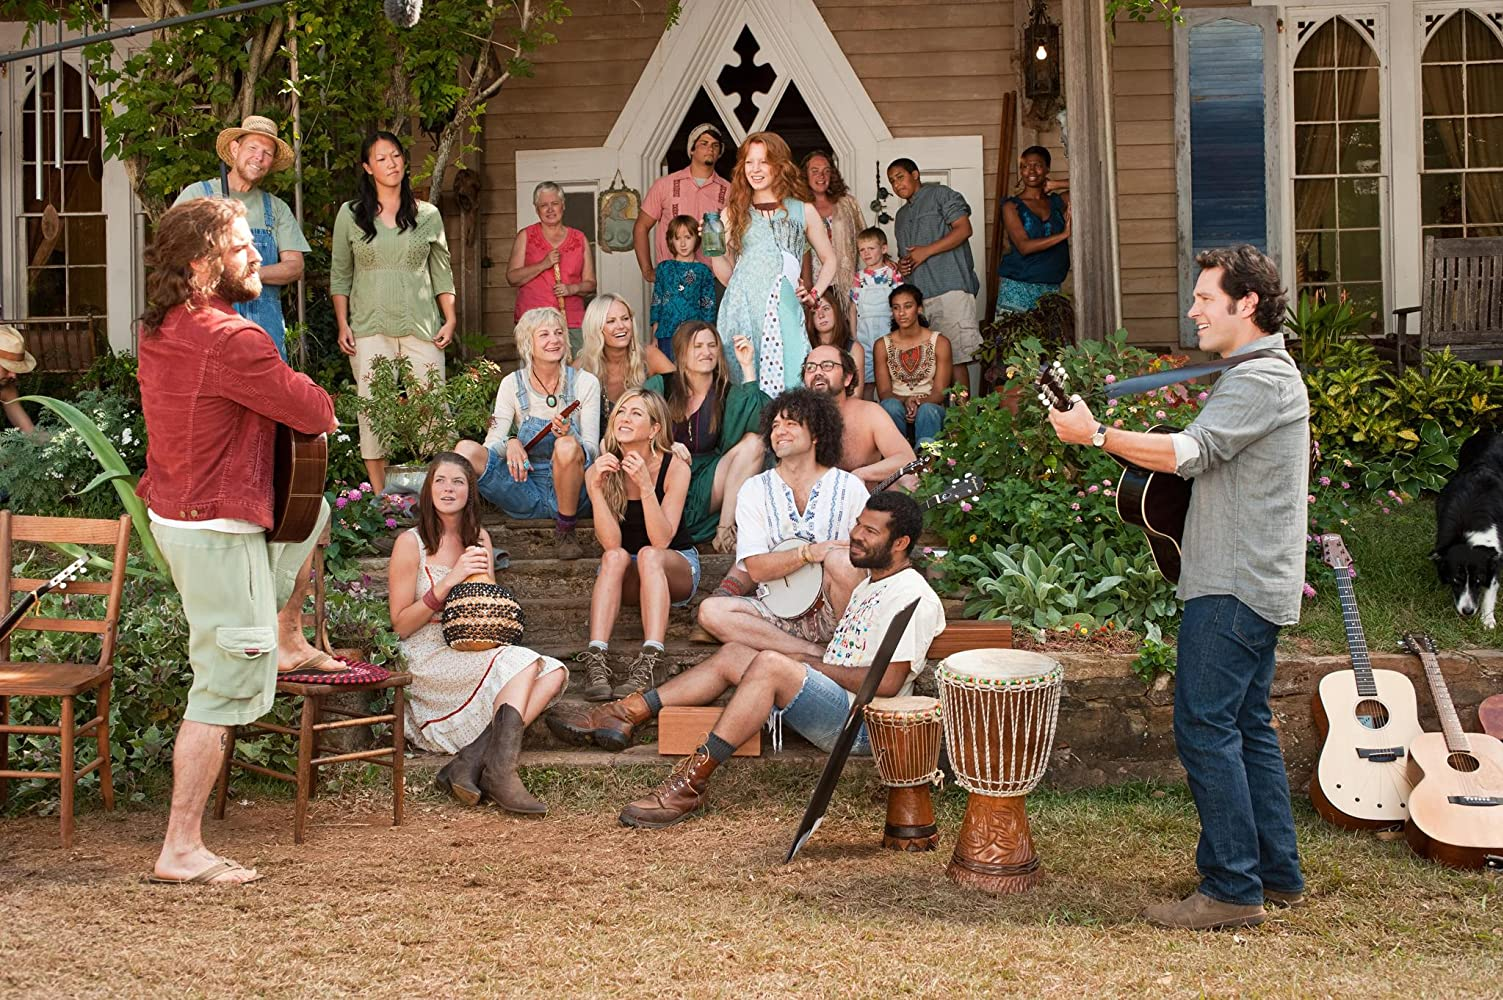 Jennifer Aniston, Malin Akerman, Lauren Ambrose, Kerri Kenney, Joe Lo Truglio, Paul Rudd, Justin Theroux, Peter Salett, Kathryn Hahn, and Jordan Peele in Wanderlust (2012)